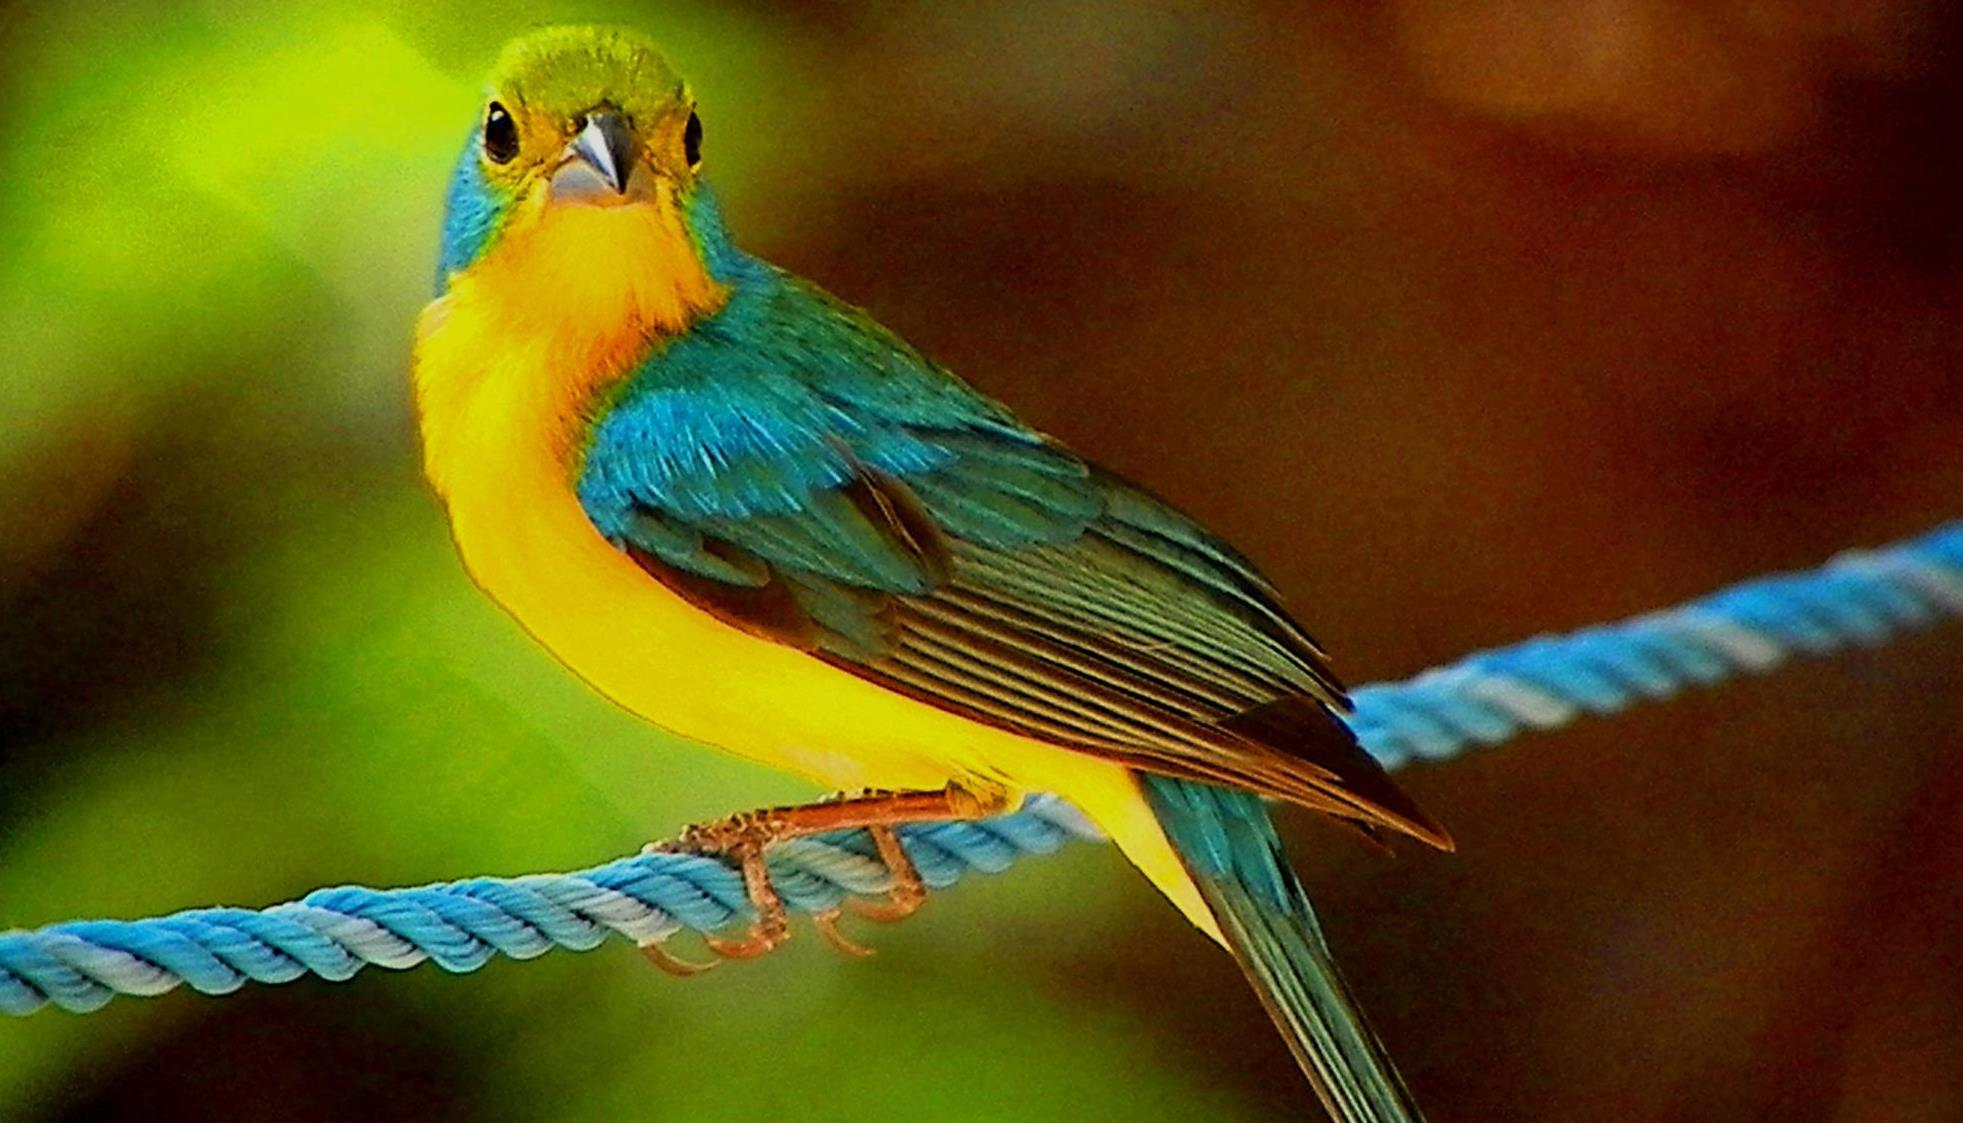 This species has a sweet, lilting song that you might enjoy.